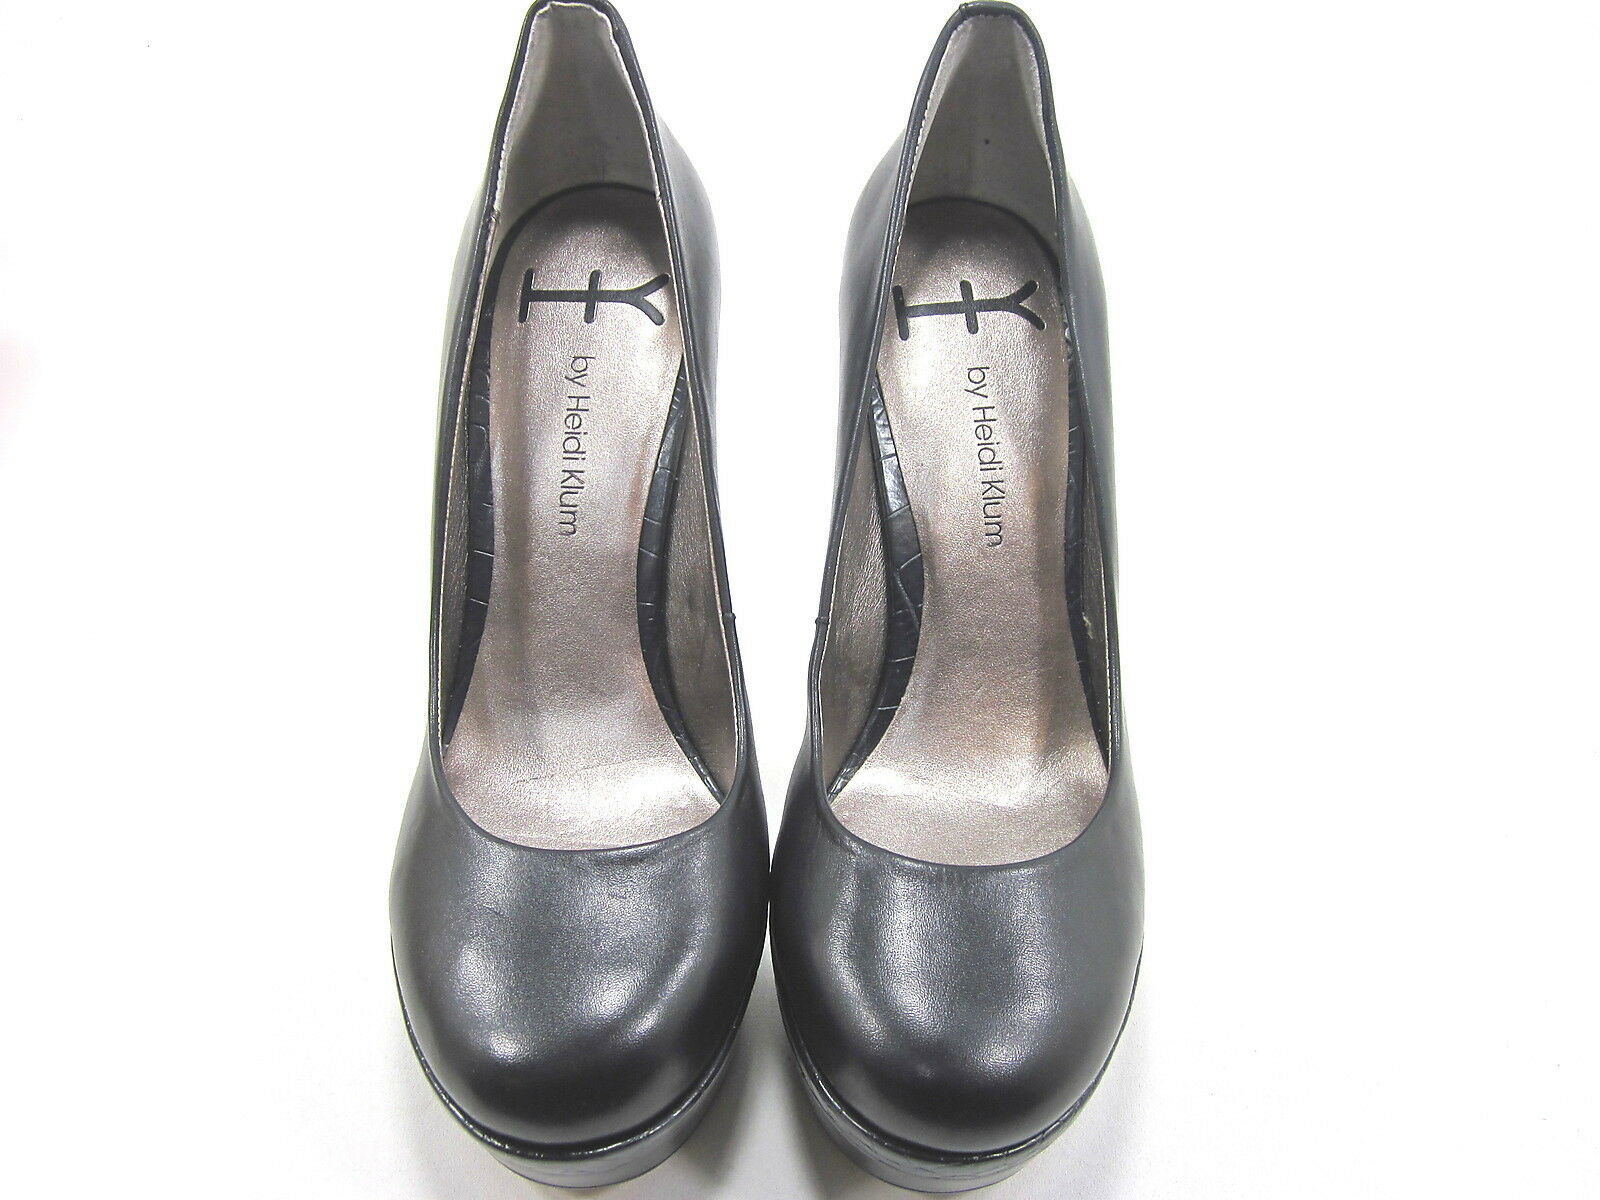 HK BY HEIDI KLUM, GEORGIA GEORGIA GEORGIA PLATFORM PUMP, Damenschuhe, BLACK, US 9.5M, NEW WITHOUT BOX d44538